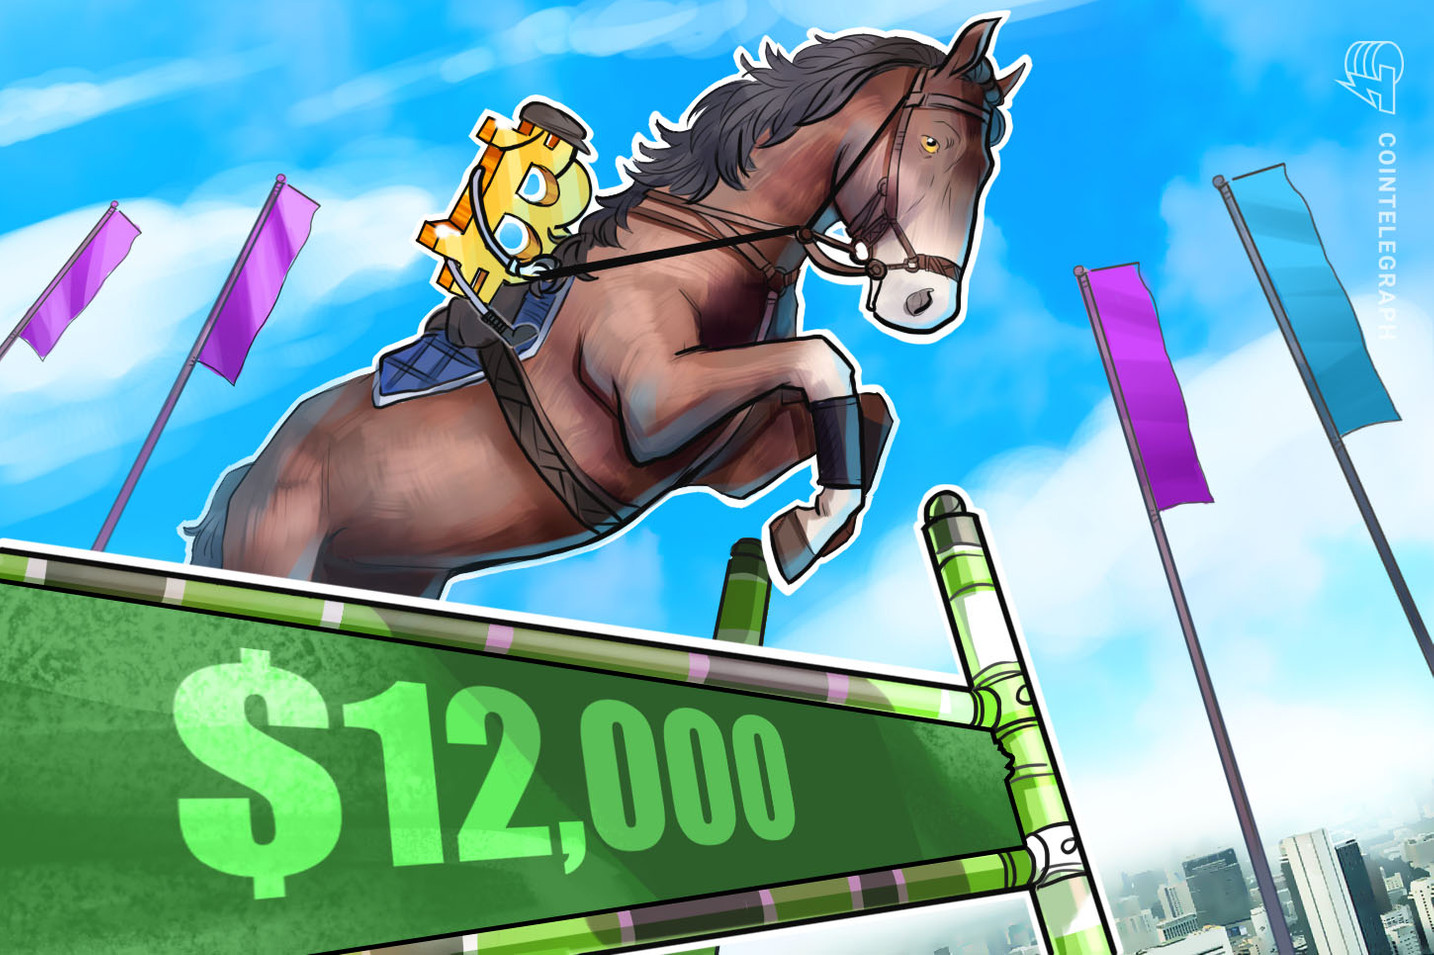 Bitcoin Price Tackles $12,000 After Breaking Through a Key Resistance Zone